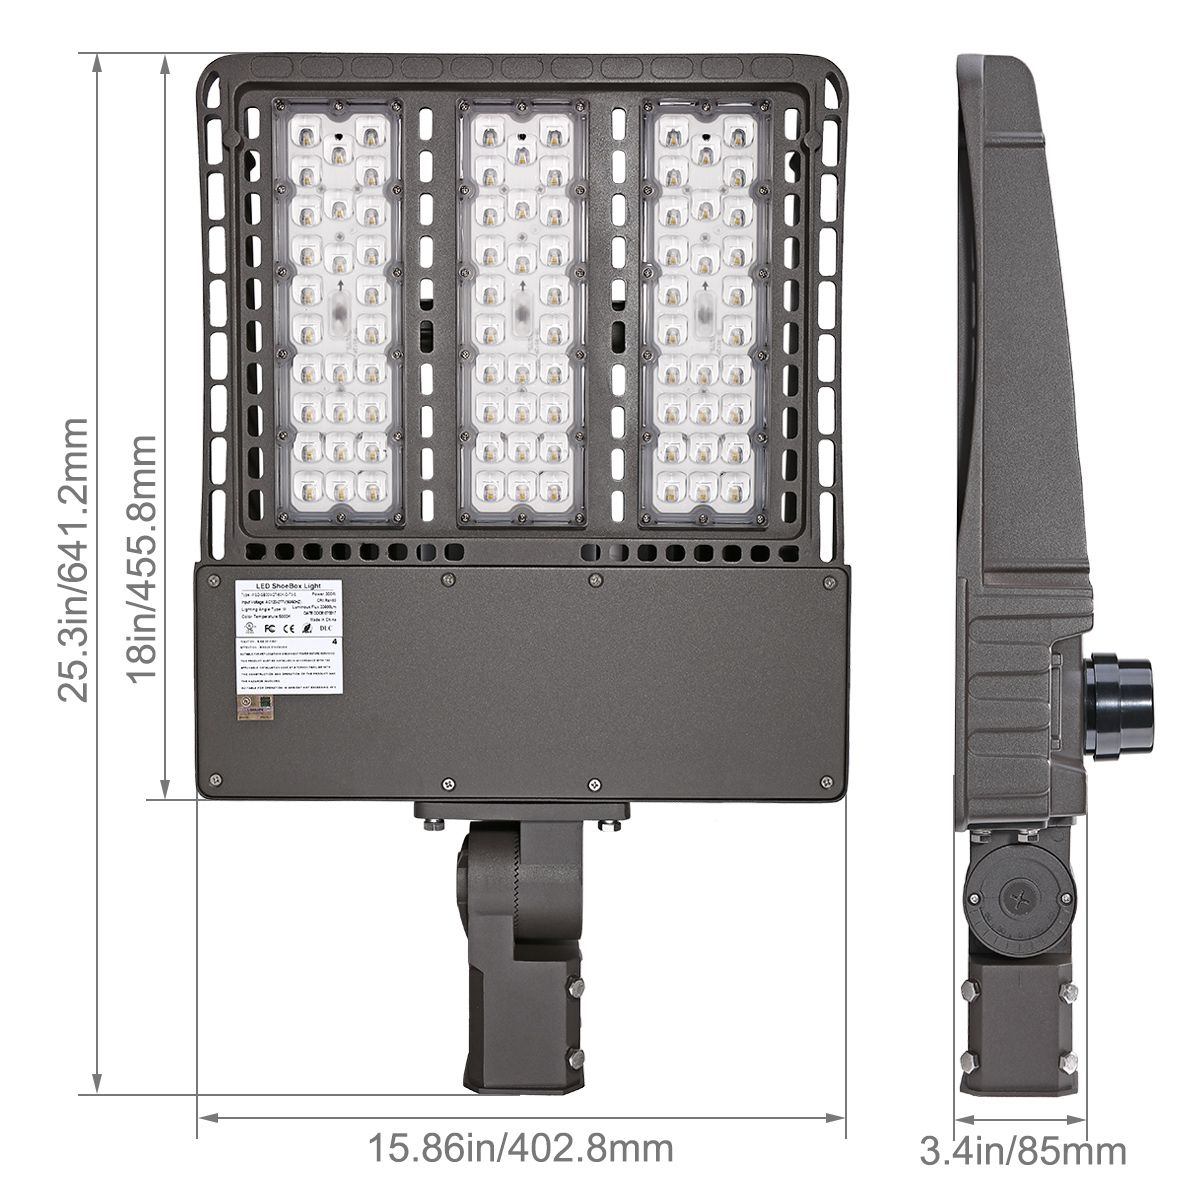 300w Led Shoebox Parking Lot Light With Slip Fitter Mounting Way 1000w Hps Equivalent 33600 Lumen Daylight White 5000k Waterproof Ip65 Dlc Ul Listed For S Led Parking Lot Lights Security Lights